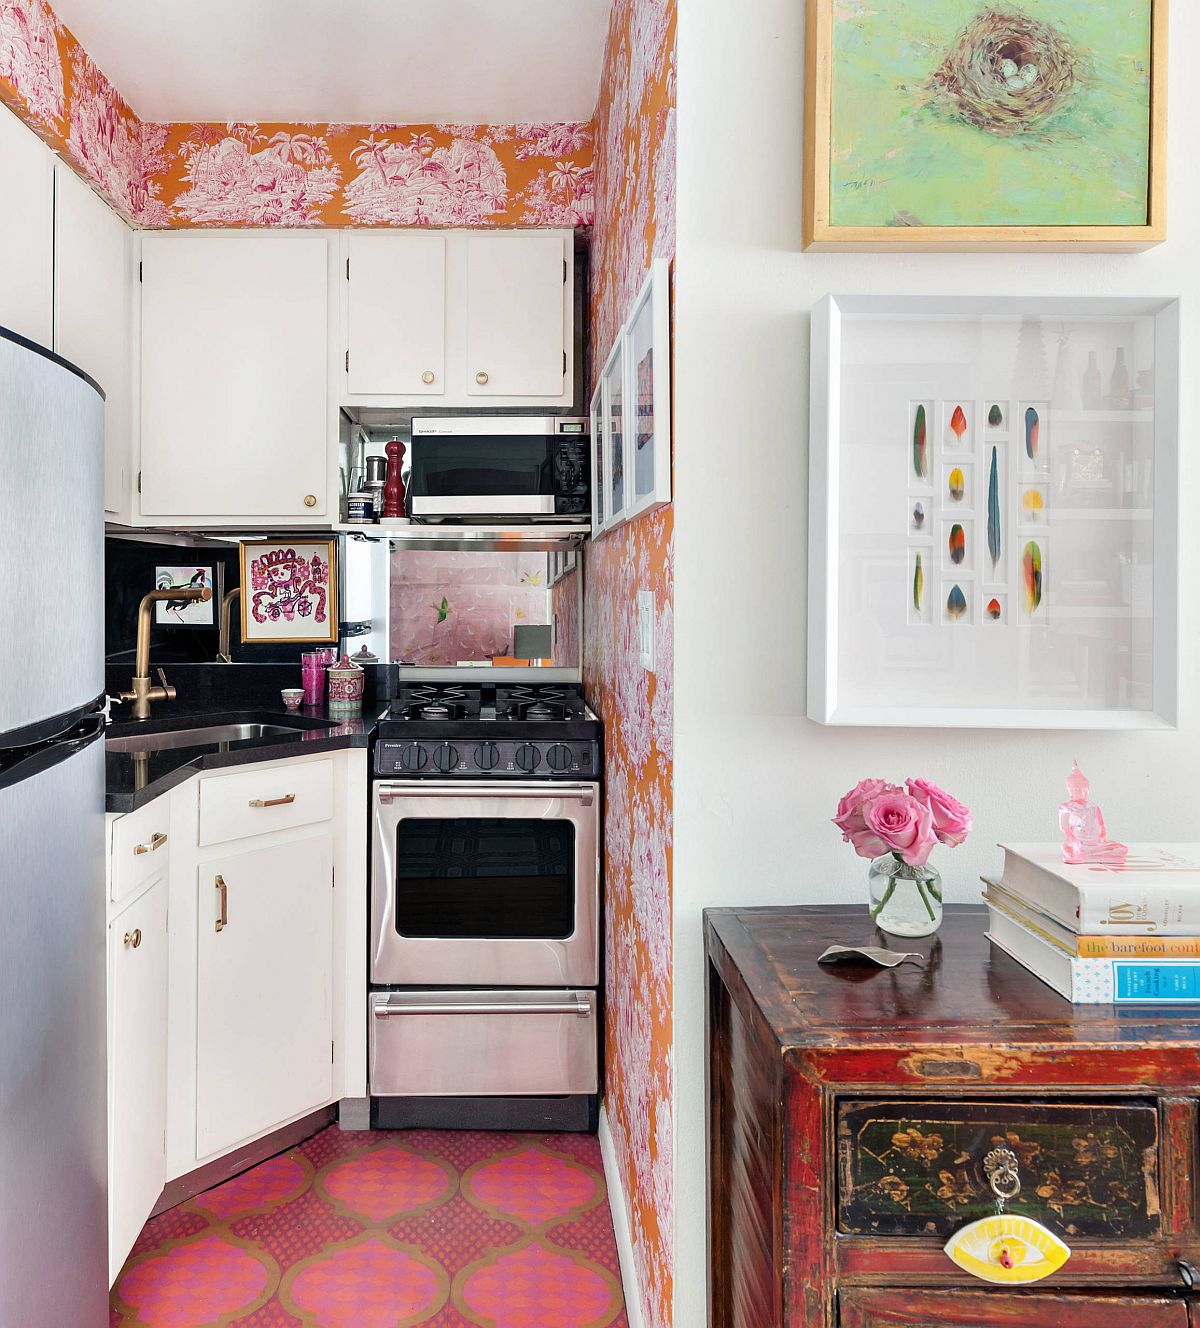 Even-the-tiniest-of-kitchens-can-feel-full-of-life-when-done-right-95307